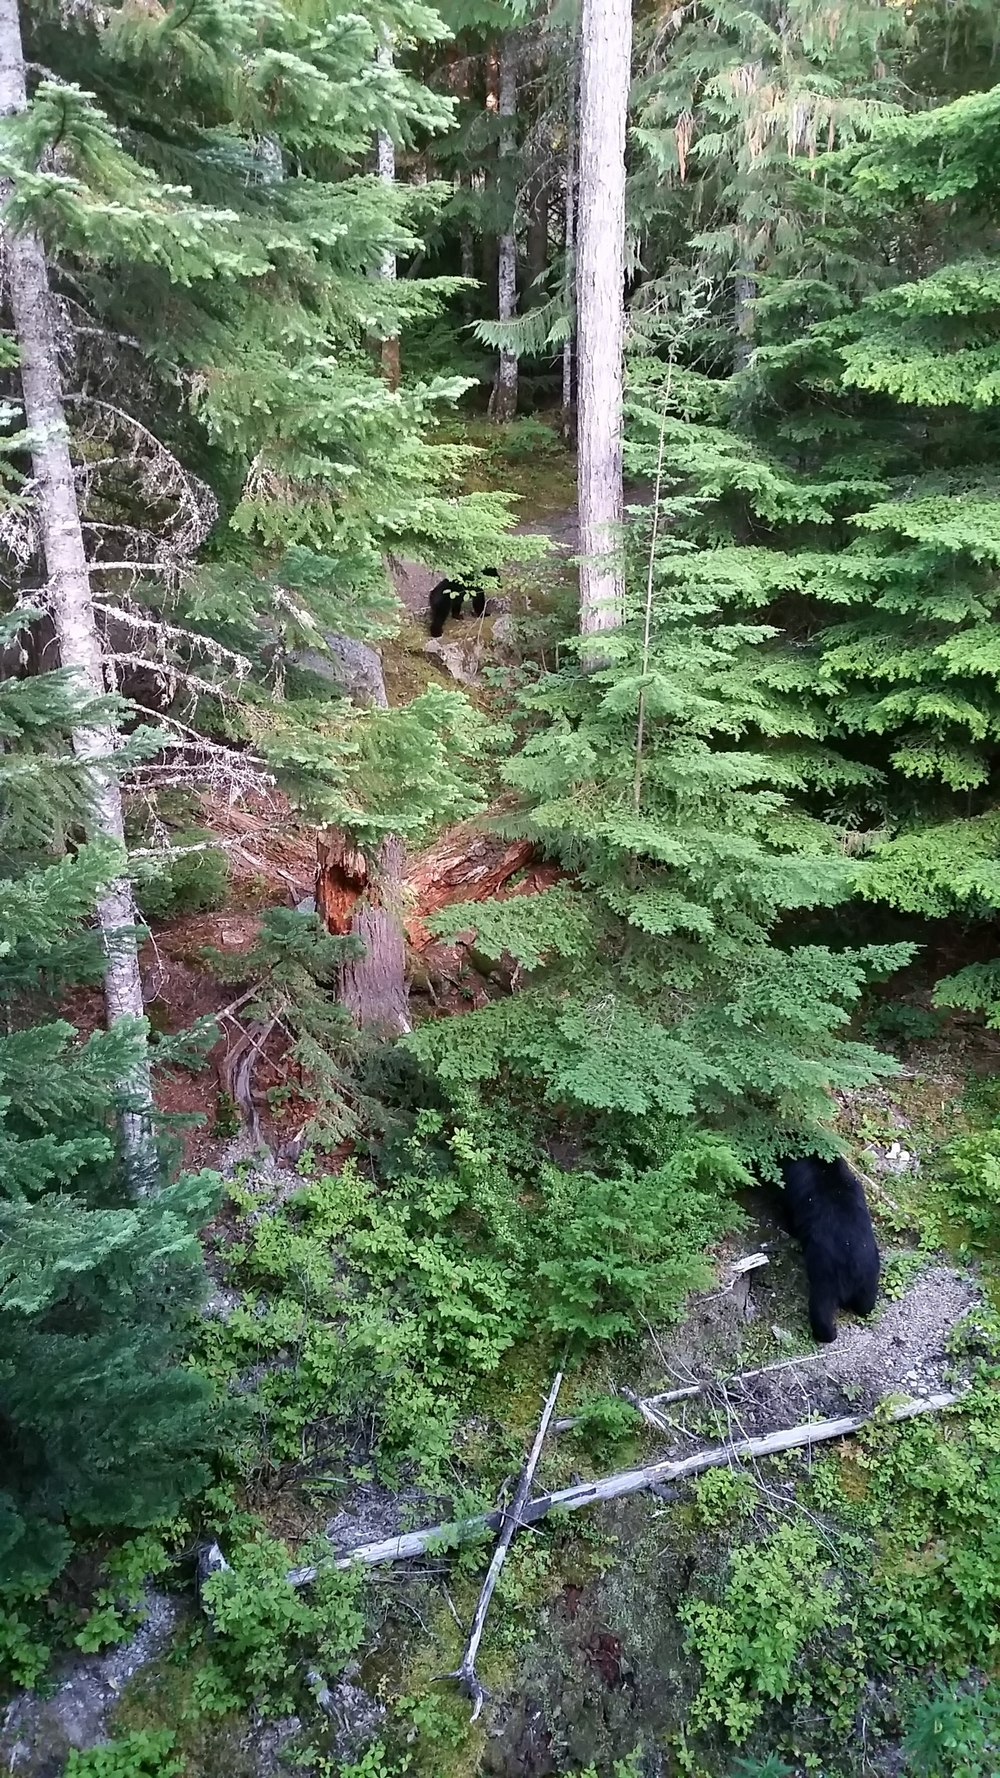 When we got back from dropping the bike off, we saw a mama bear and two cubs just outside our condo.